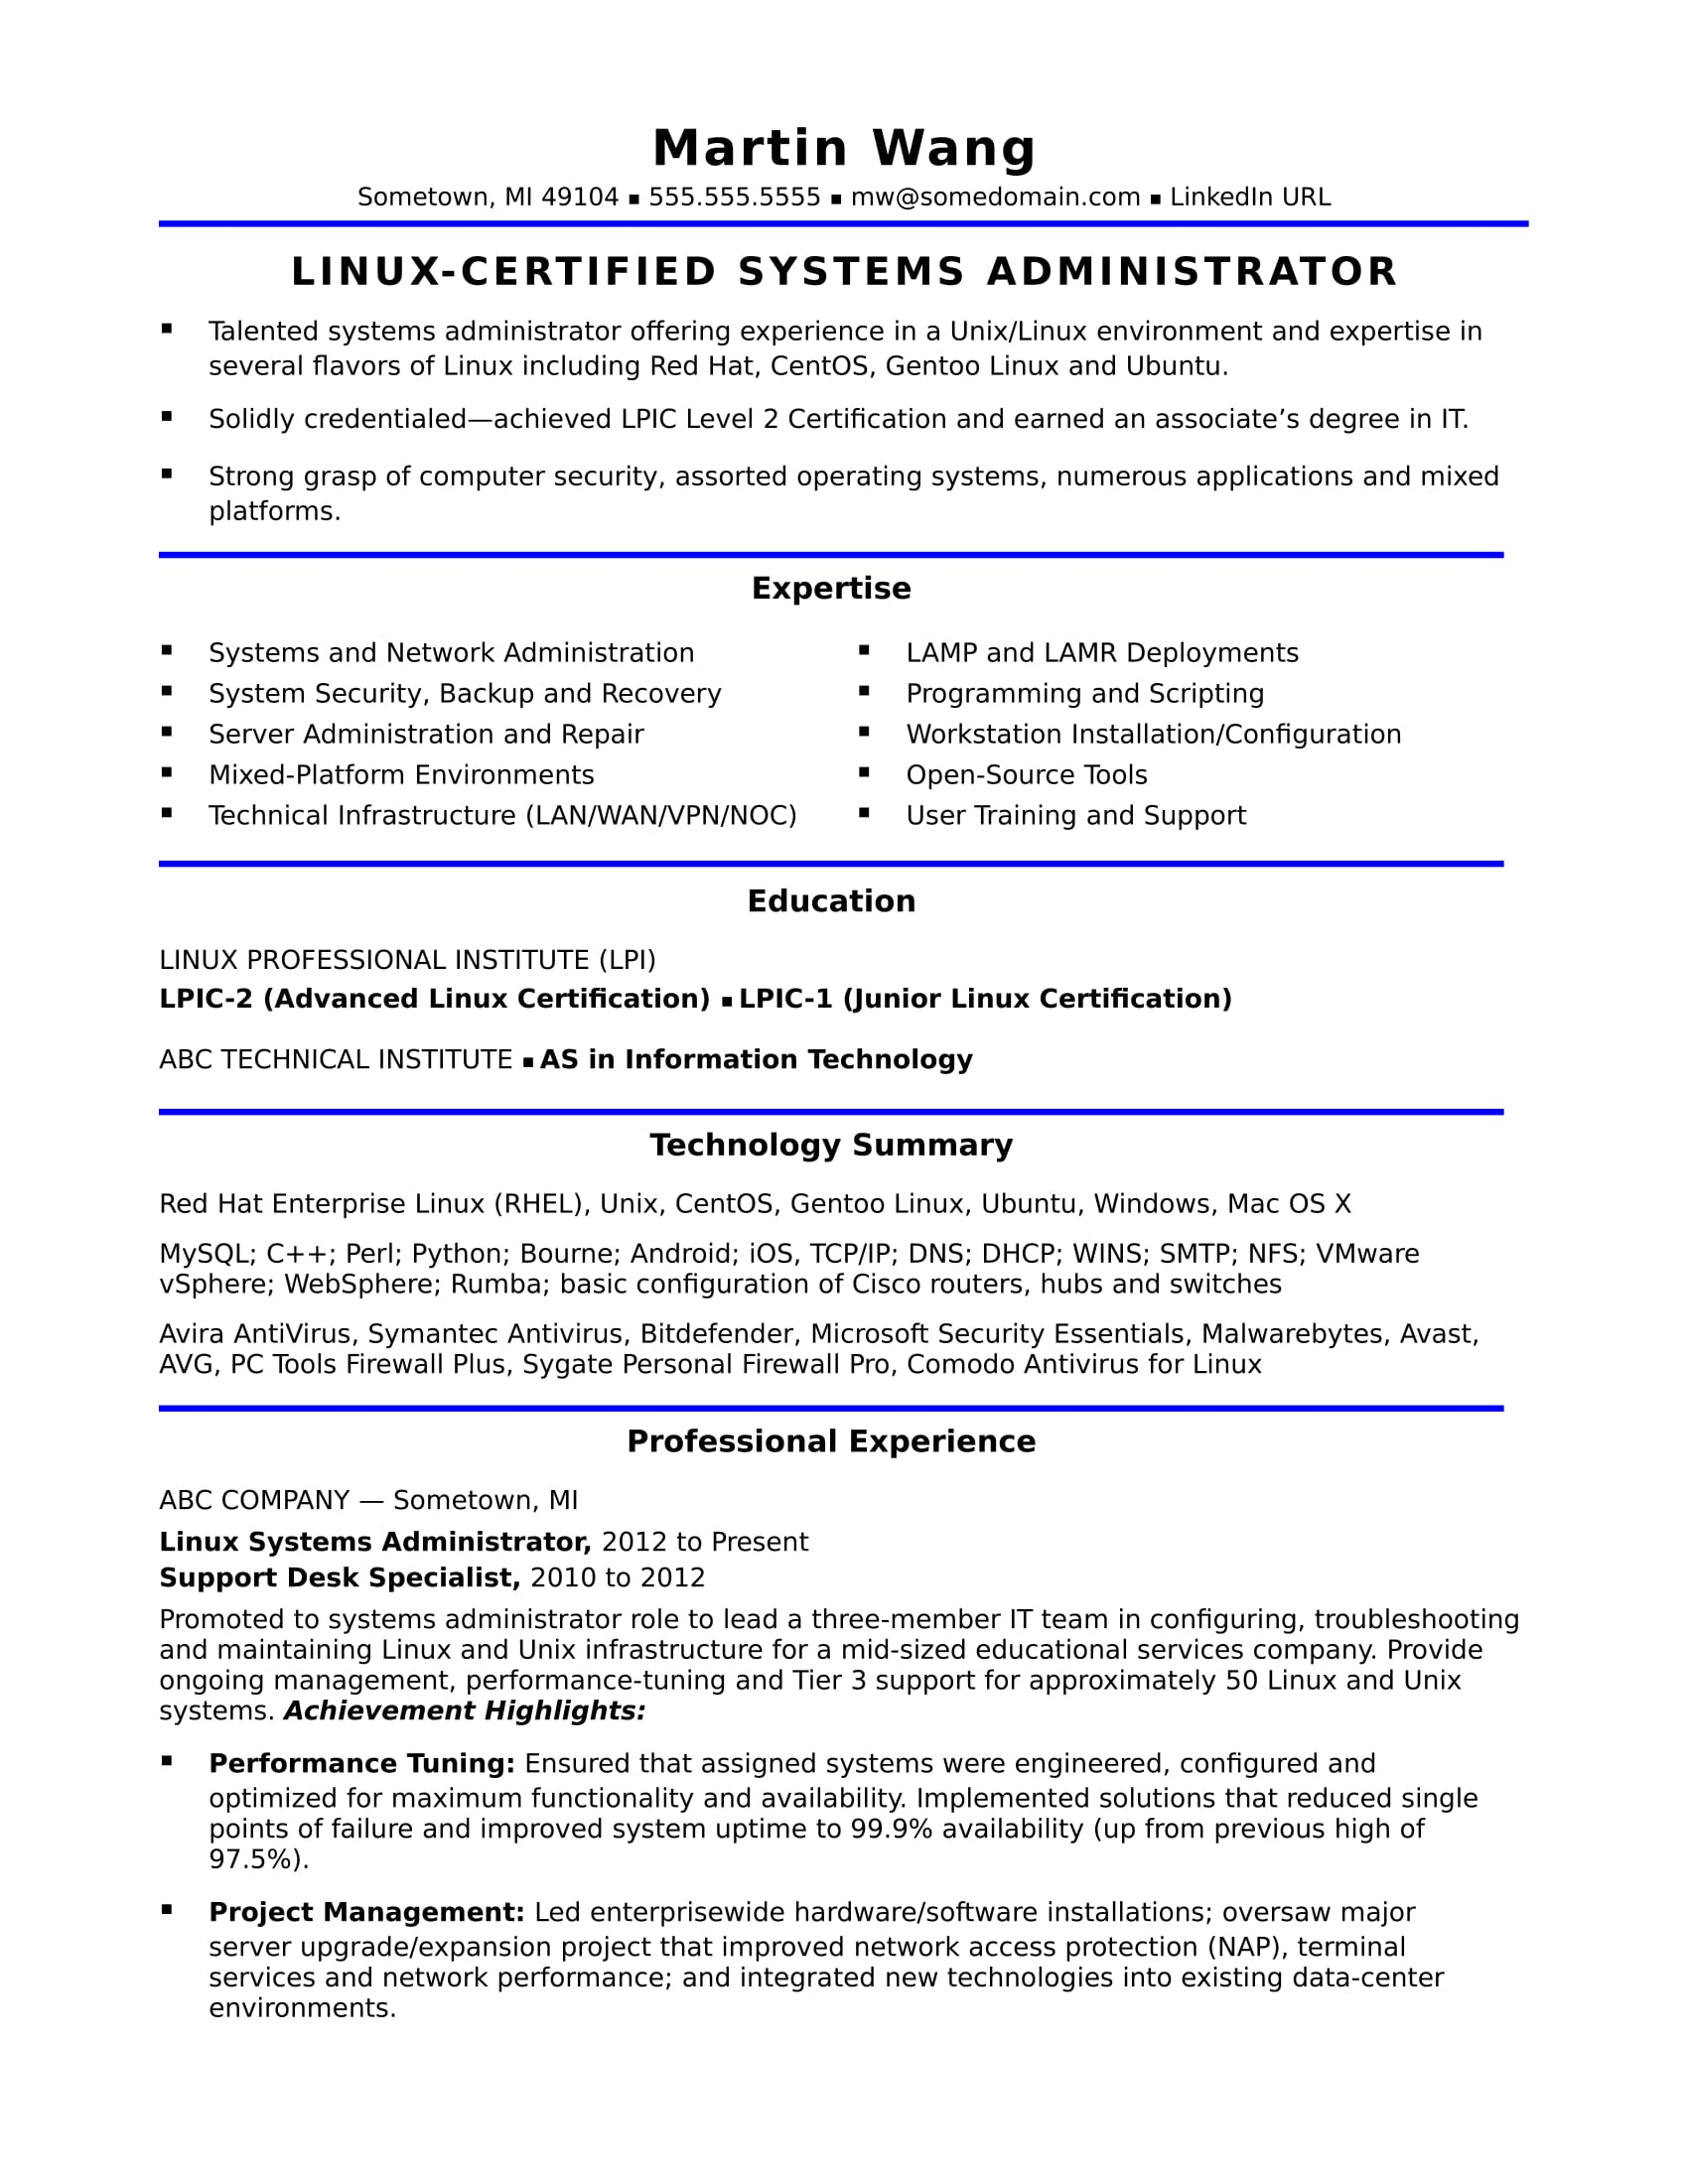 sample resume for midlevel systems administrator monster availability example examples Resume Availability Resume Example